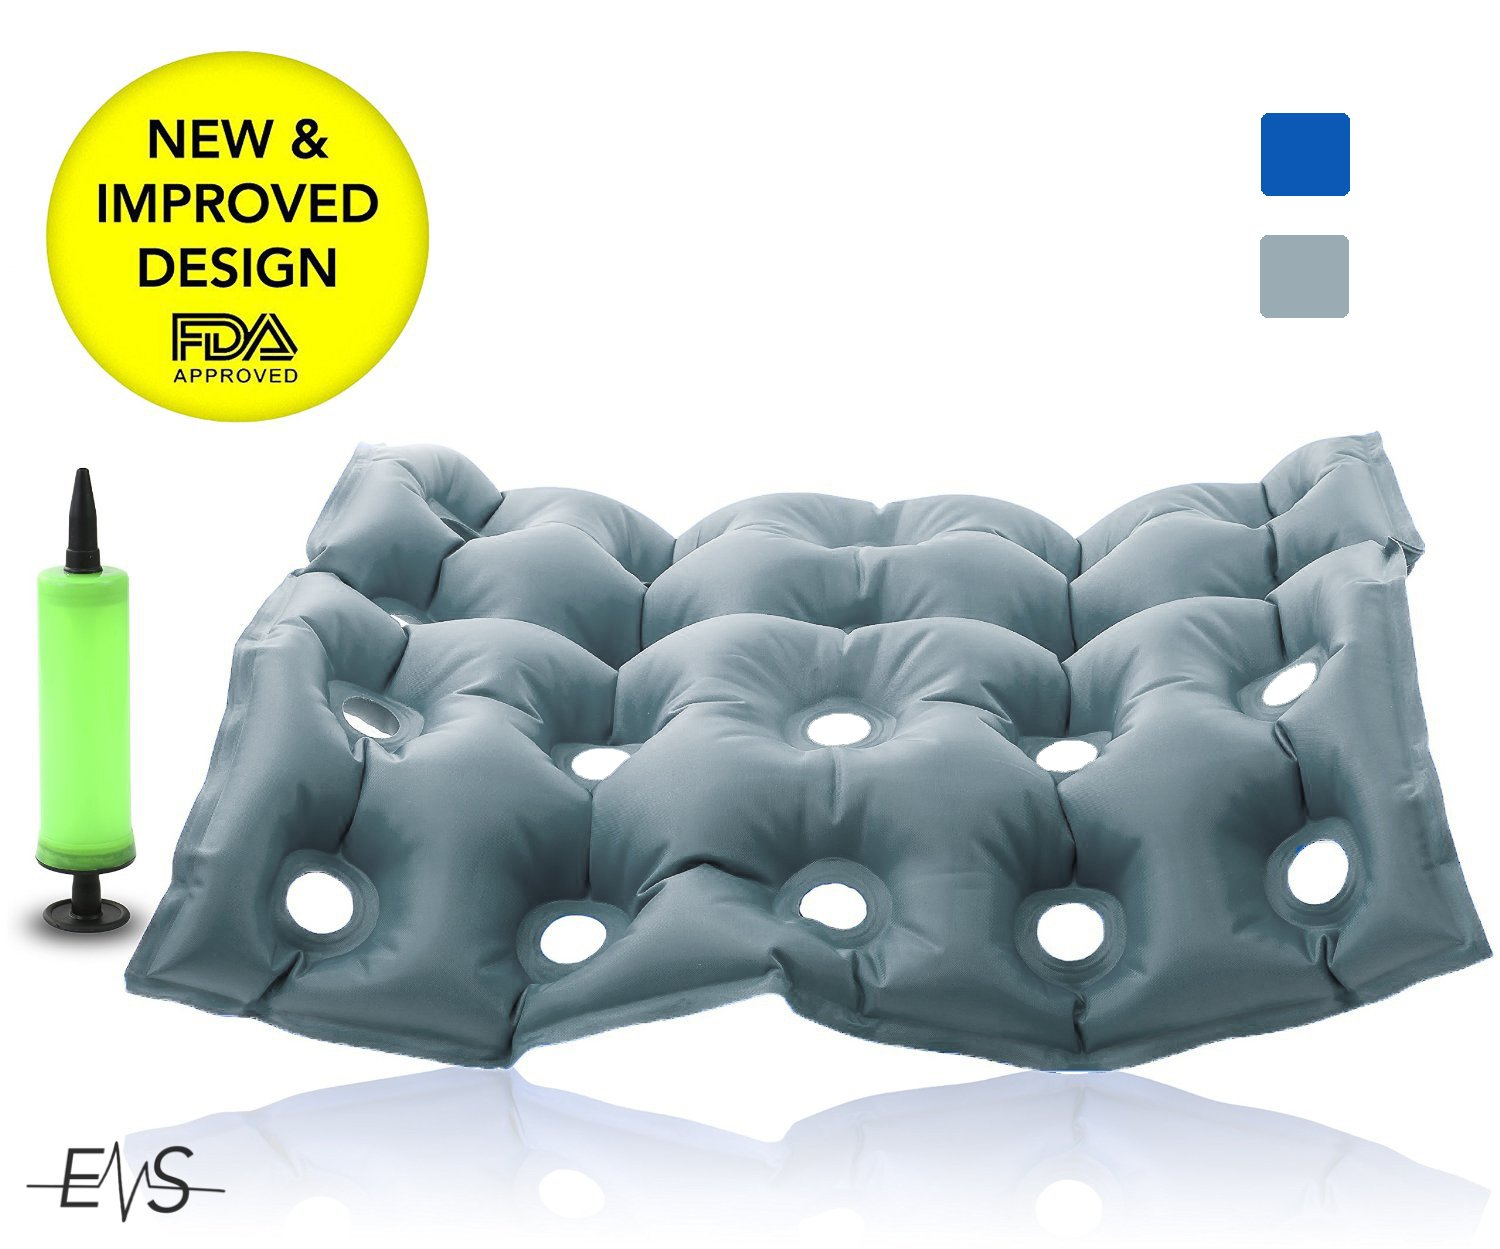 People sitting in waffle chair - Premium Air Inflatable Seat Cushion 17 X 17 Heat Sealed Construction For Durability